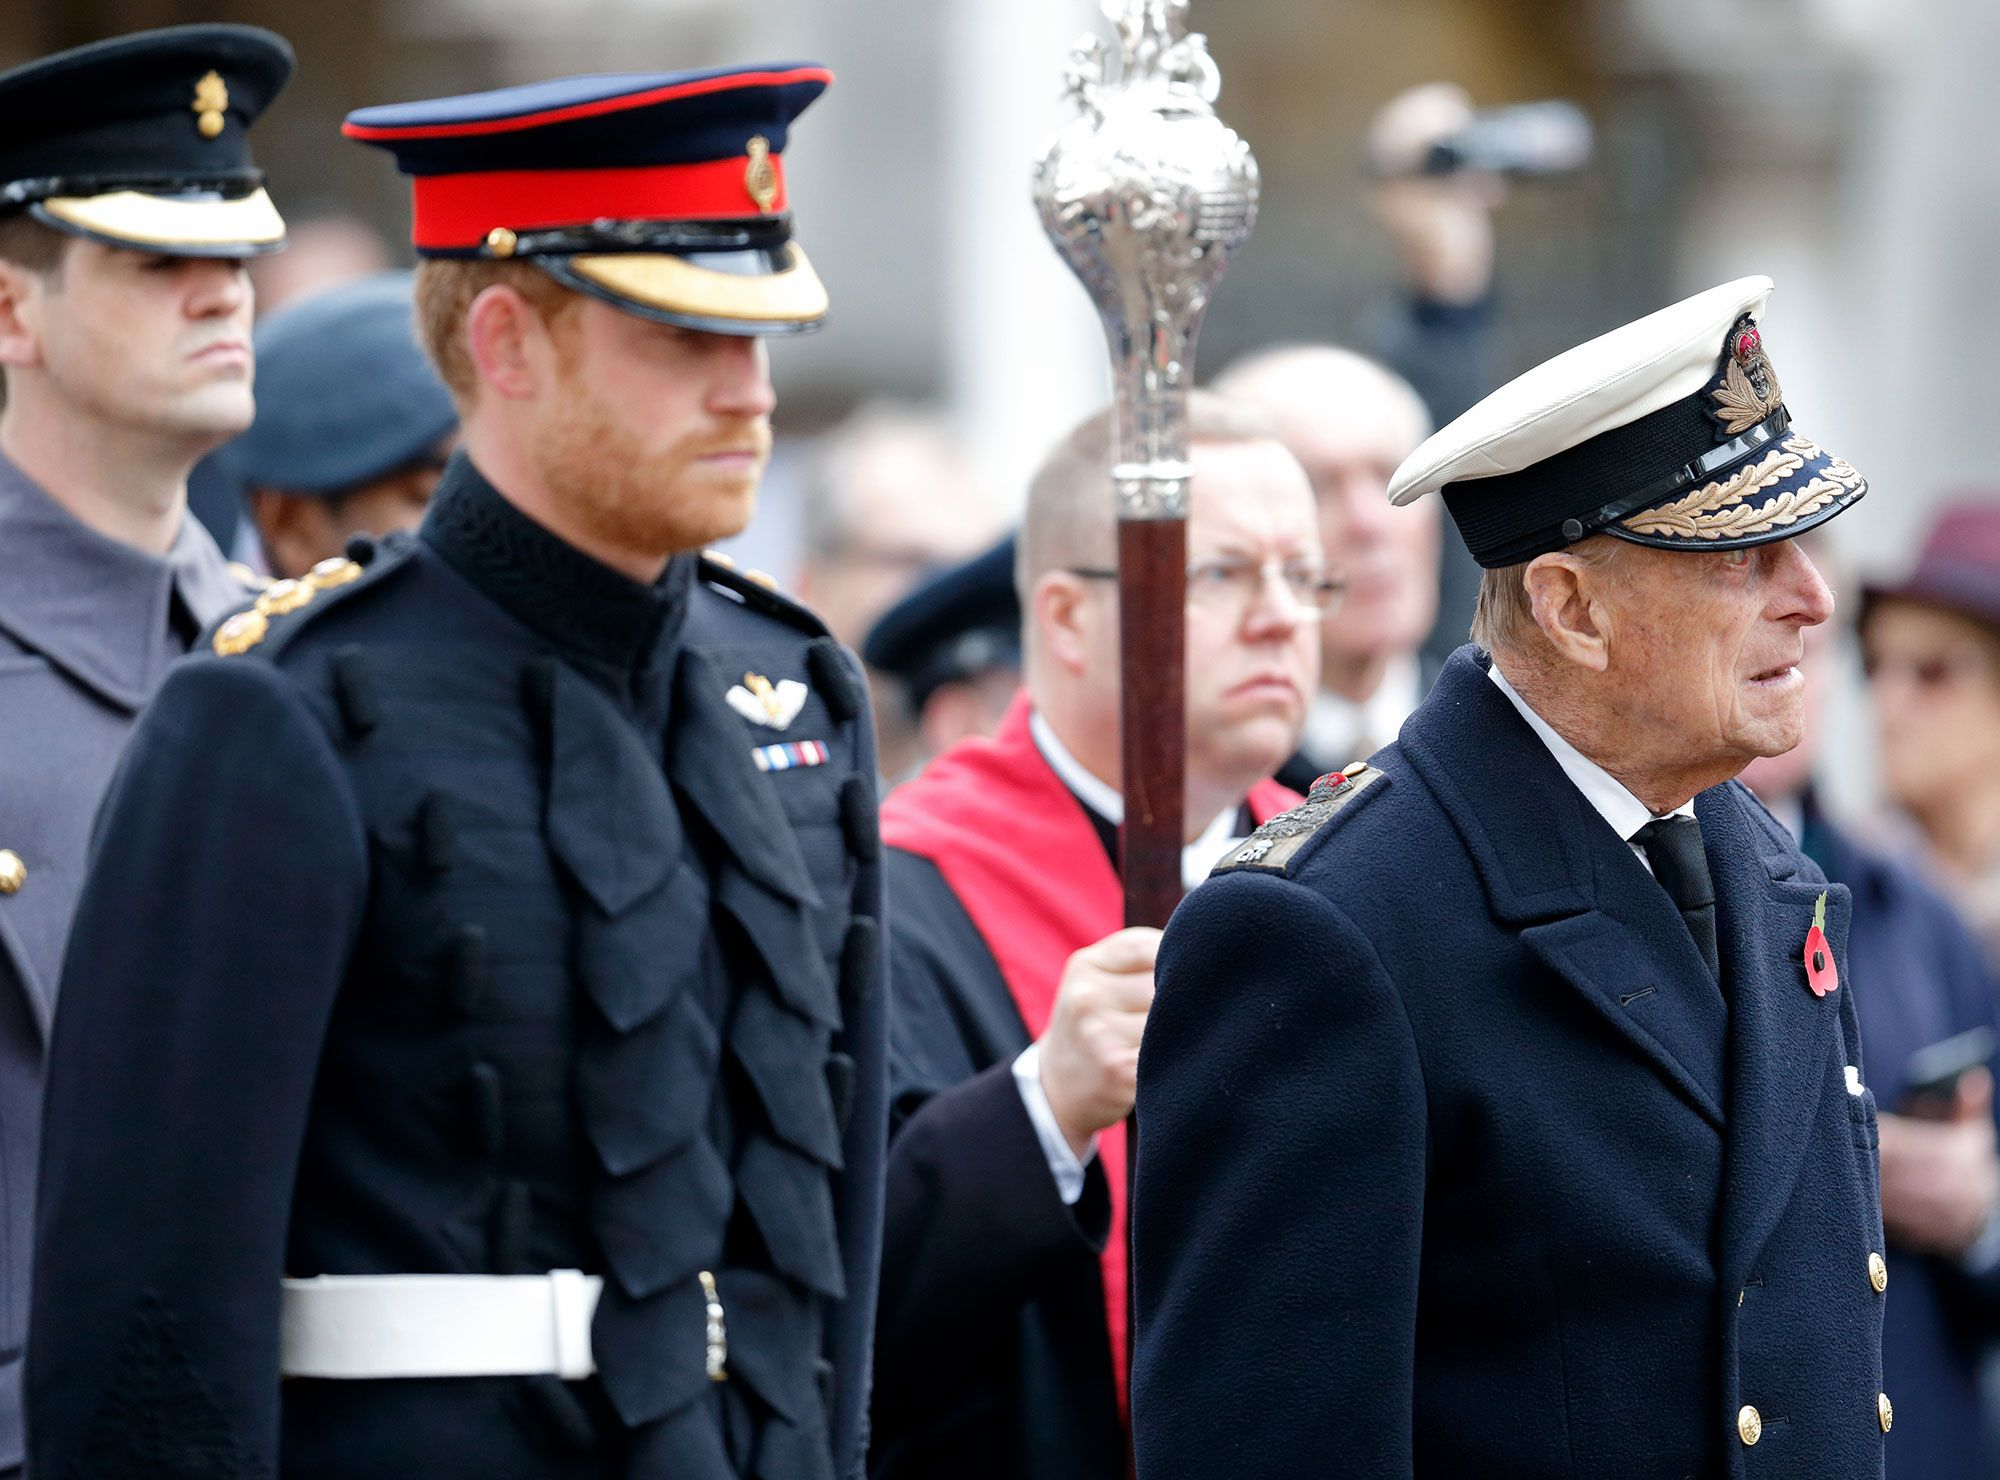 Prince Harry will be attending grandfather Prince Philip's funeral